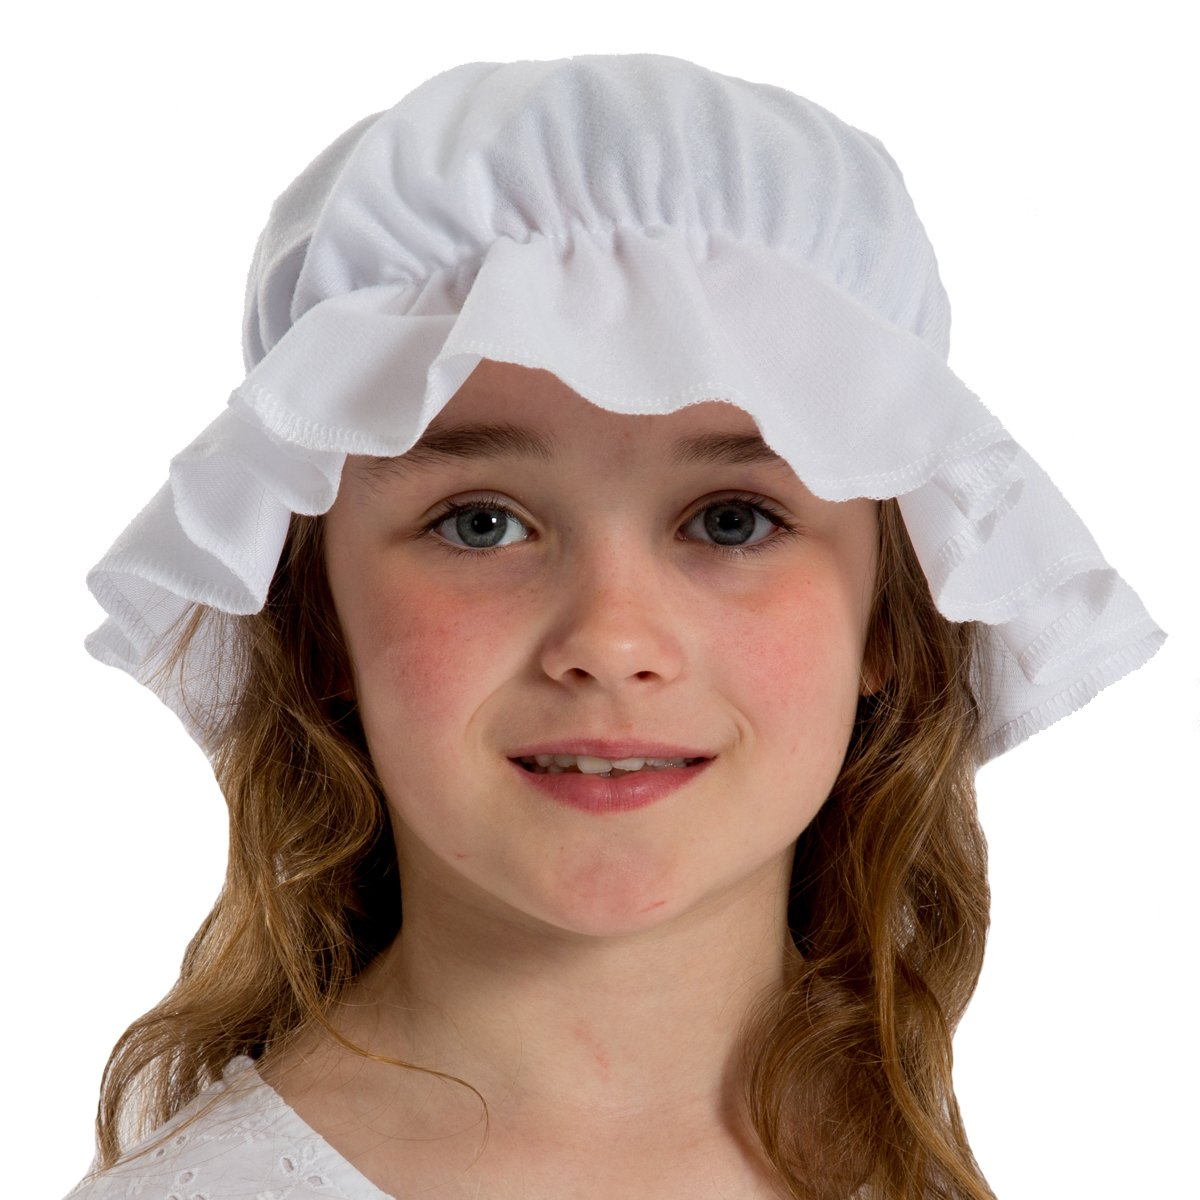 Making Believe Colonial White Polyester Mop Cap